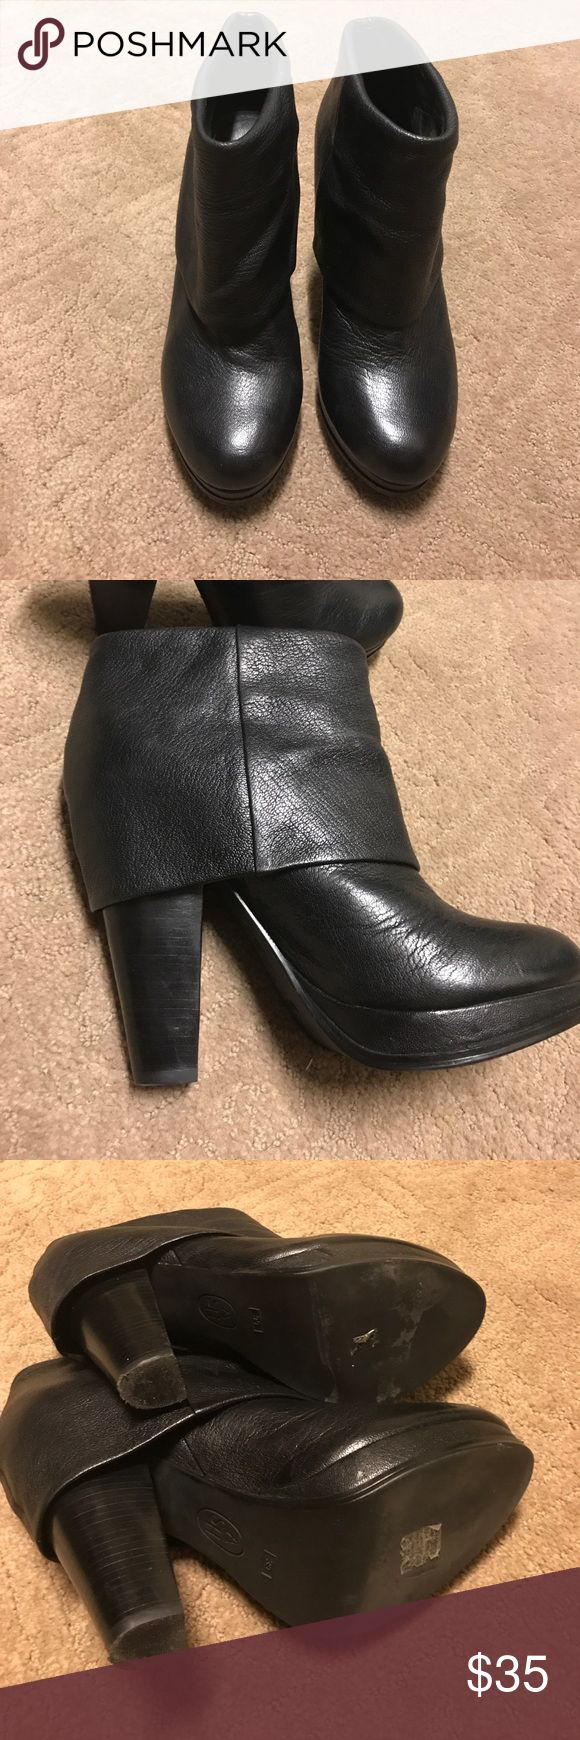 Used Women's ankle boots Used Women's Ankle booties by ASH.  Perfect for fall. Heel shows signs of wear see pics Ash Shoes Ankle Boots & Booties